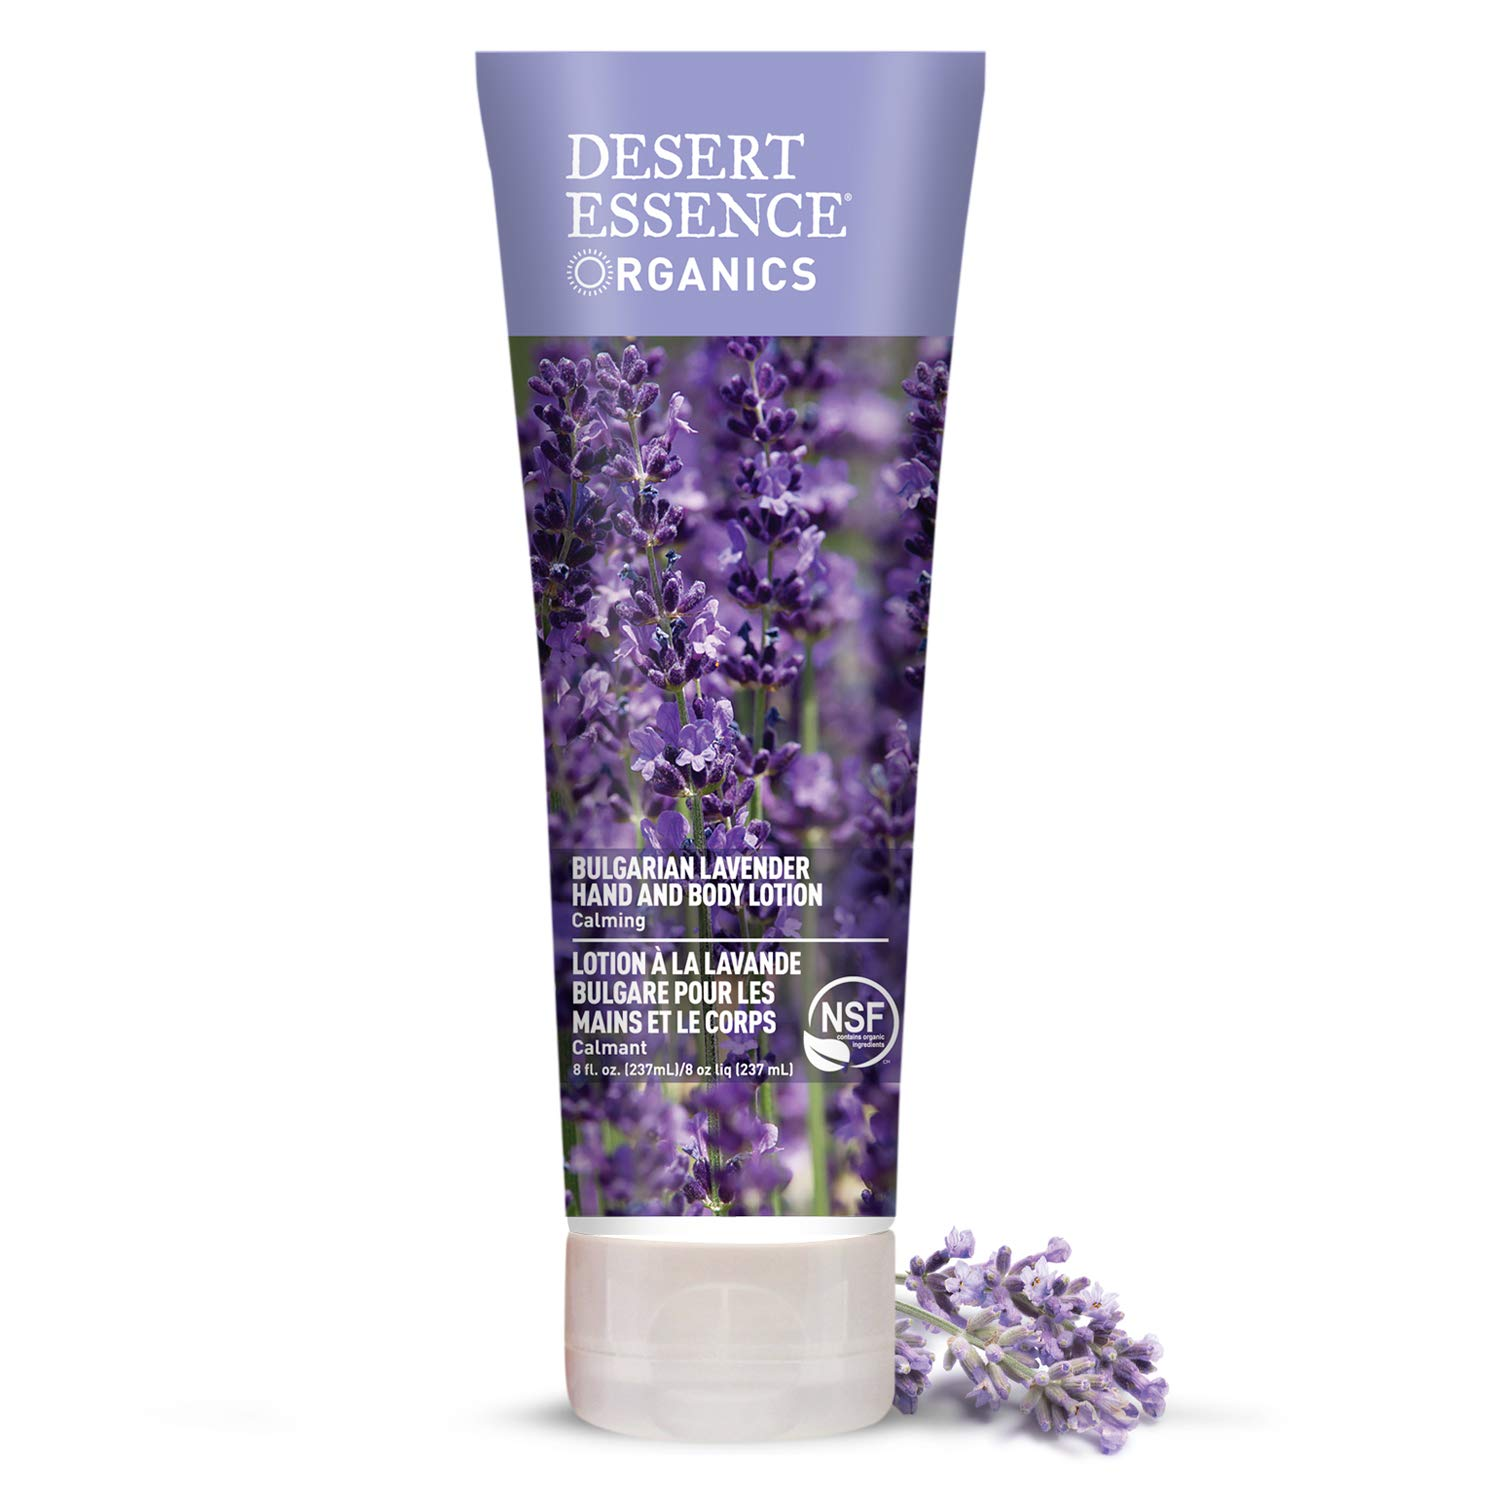 Desert Essence Bulgarian Lavender Hand & Body Lotion - 8 Fl Ounce - Calming - Shea Butter - Aloe Vera - Soothes & Nurtures - No Oily Residue - Honeysuckle - No Parabens